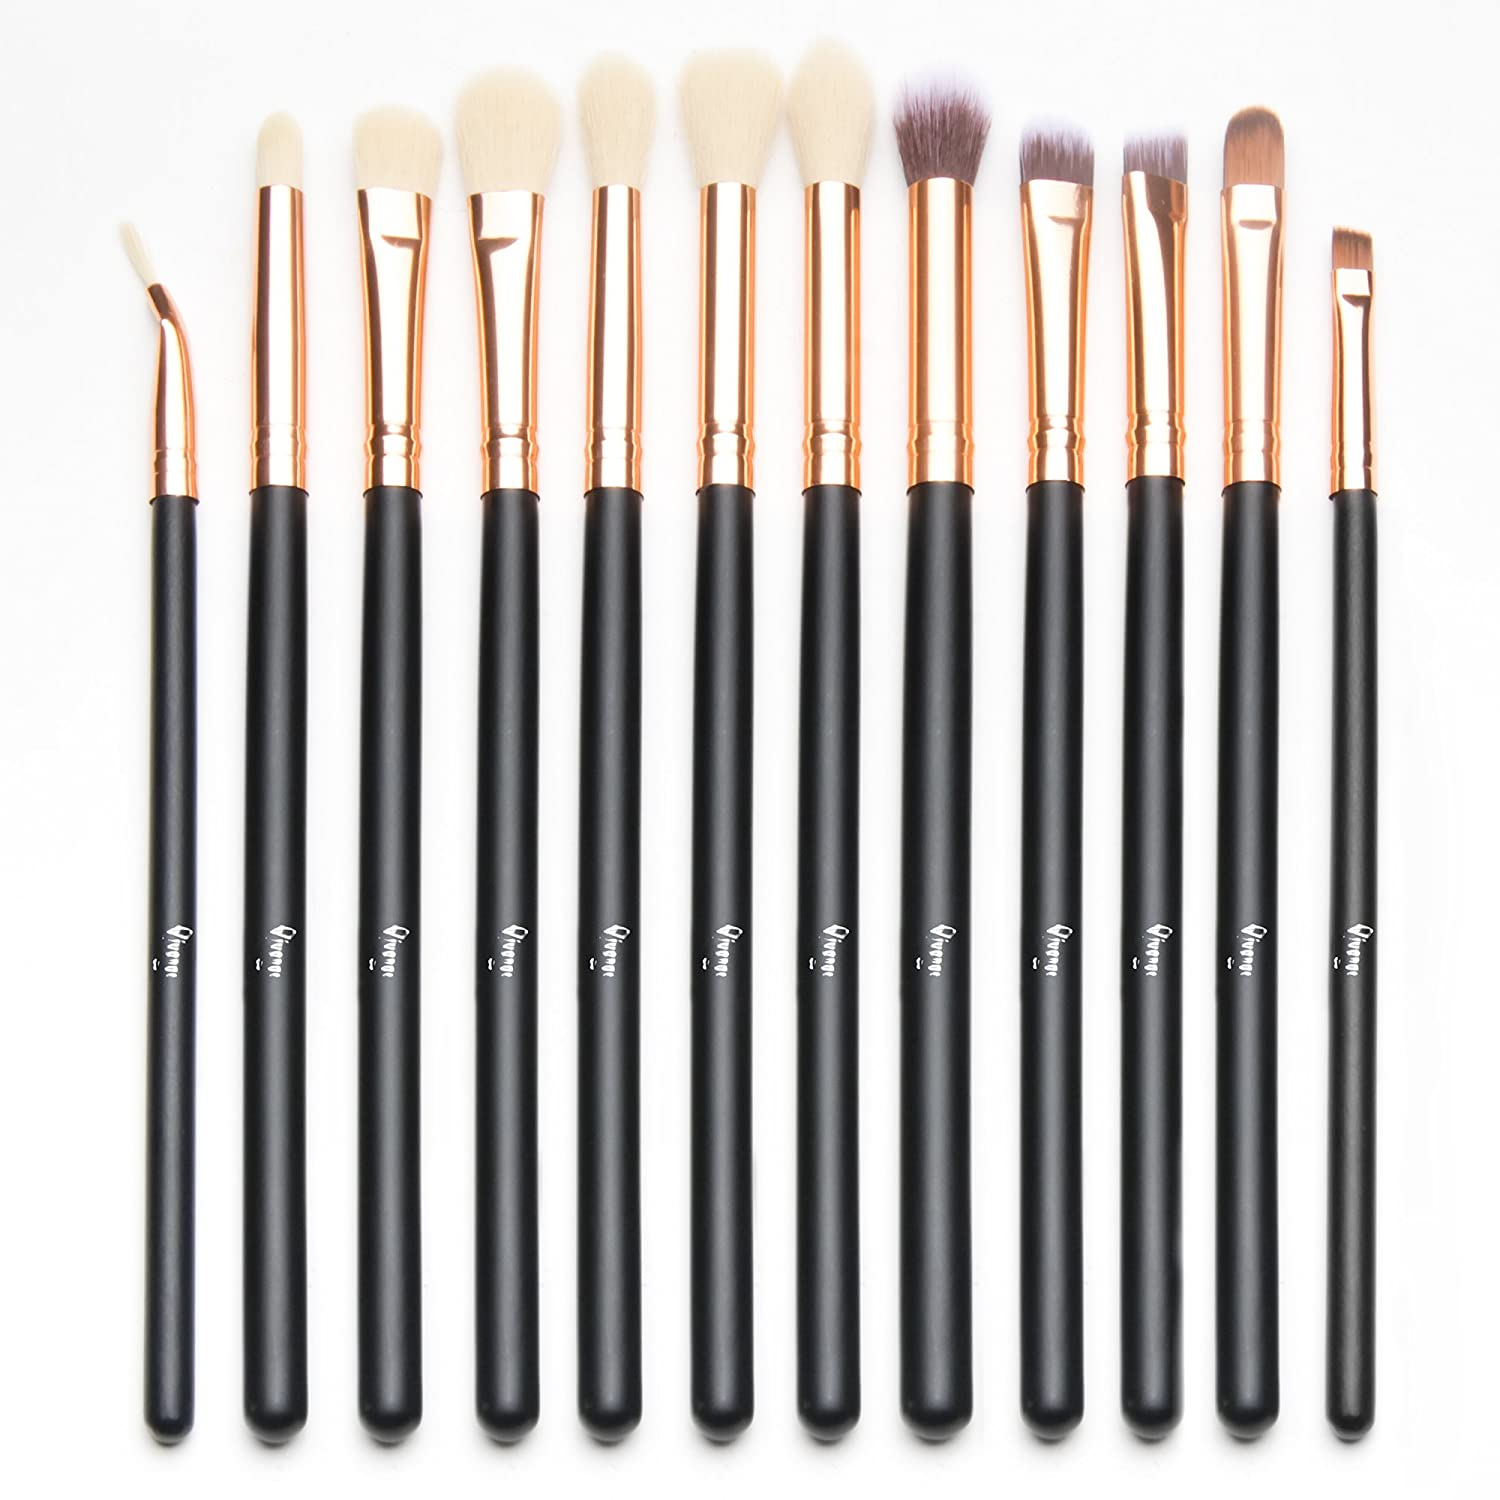 Qivange Eye Brushes Set Makeup Brush Kit with pouch (12pcs Rose Gold)